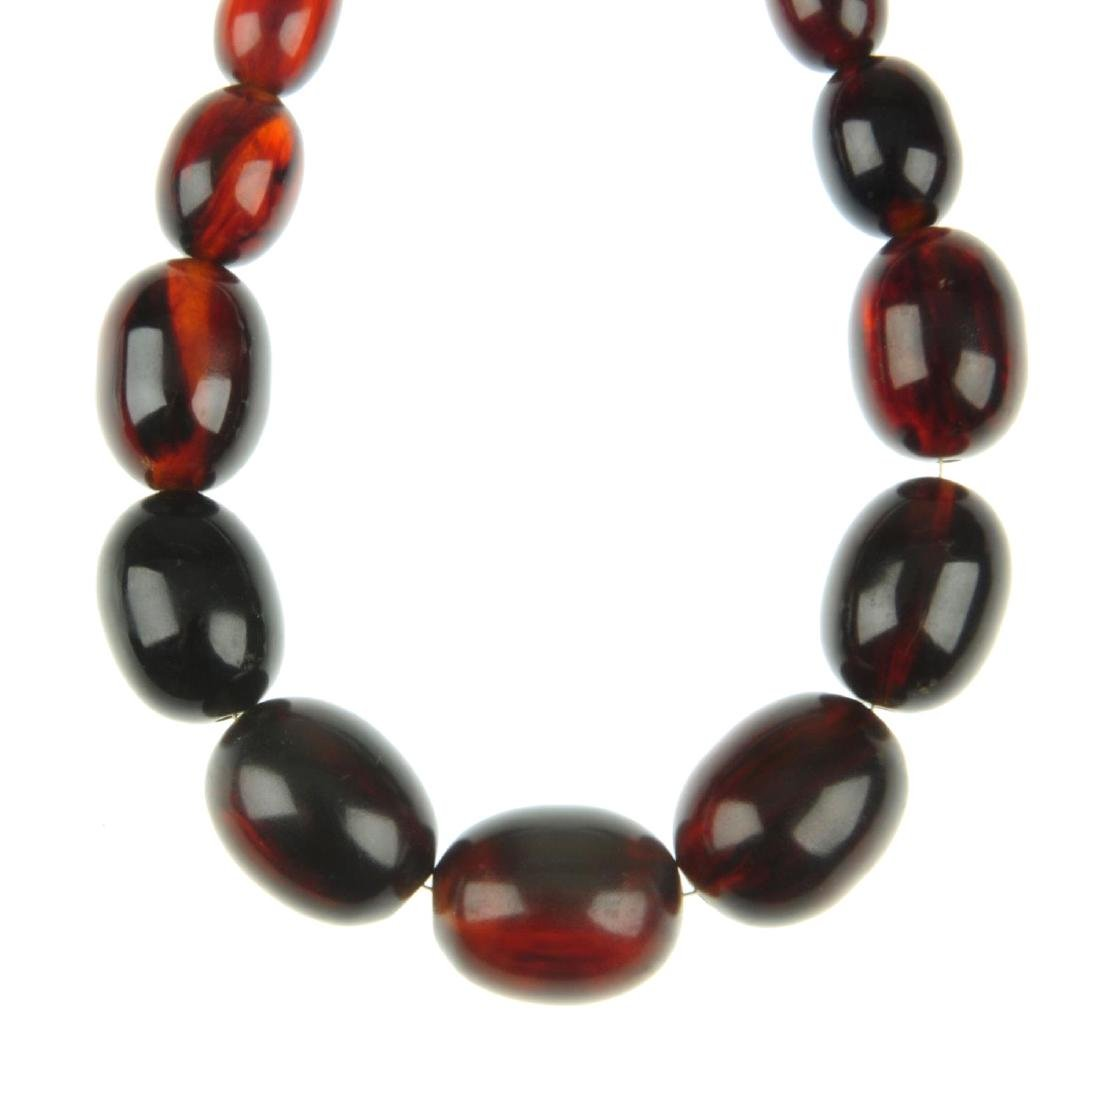 A red plastic bead necklace. Comprising forty